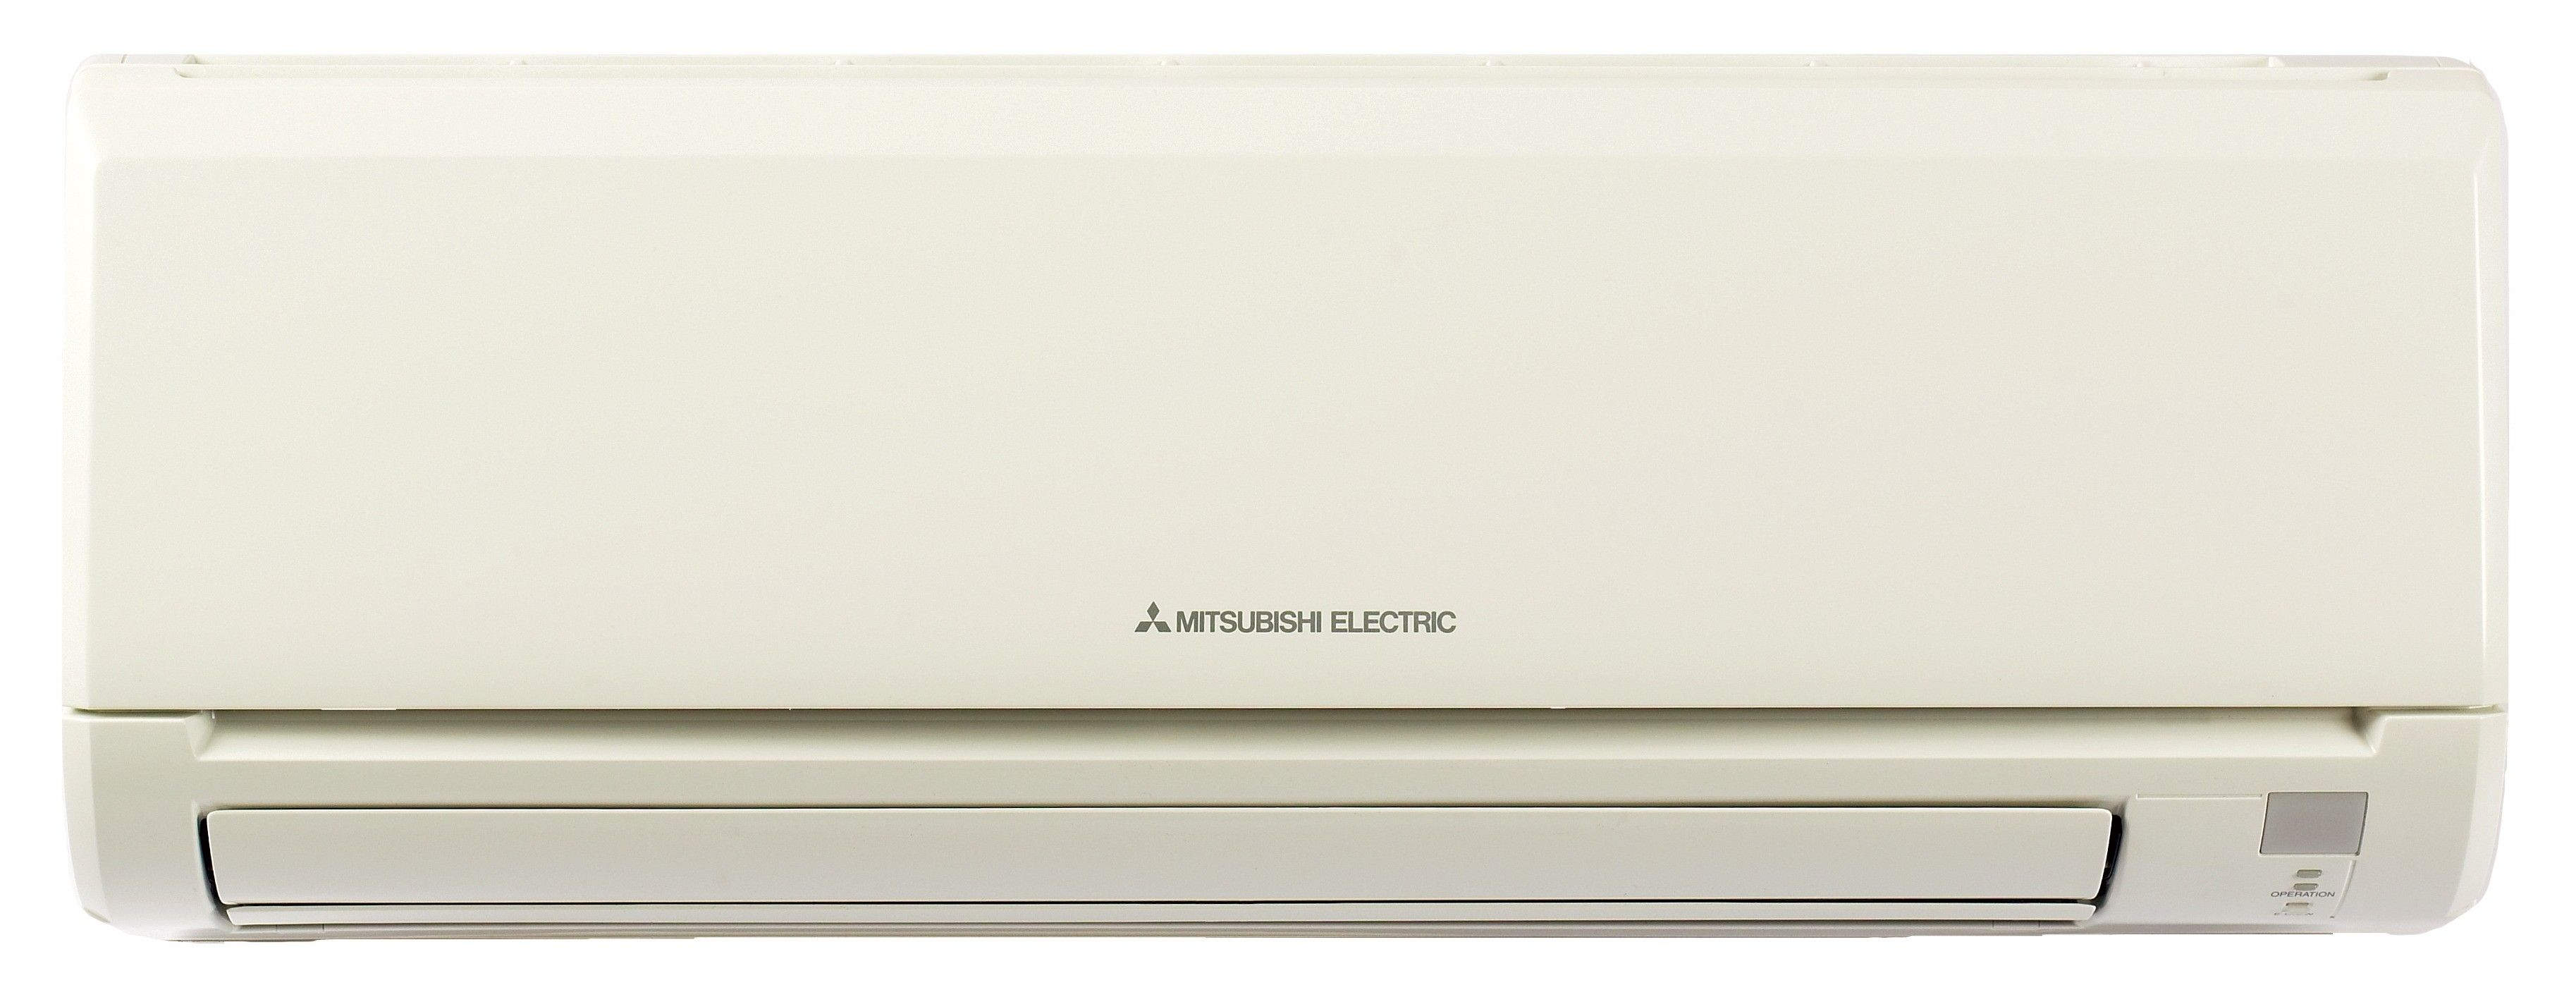 18K BTU Mitsubishi MSZGL Wall-Mounted Heat Pump Indoor Unit